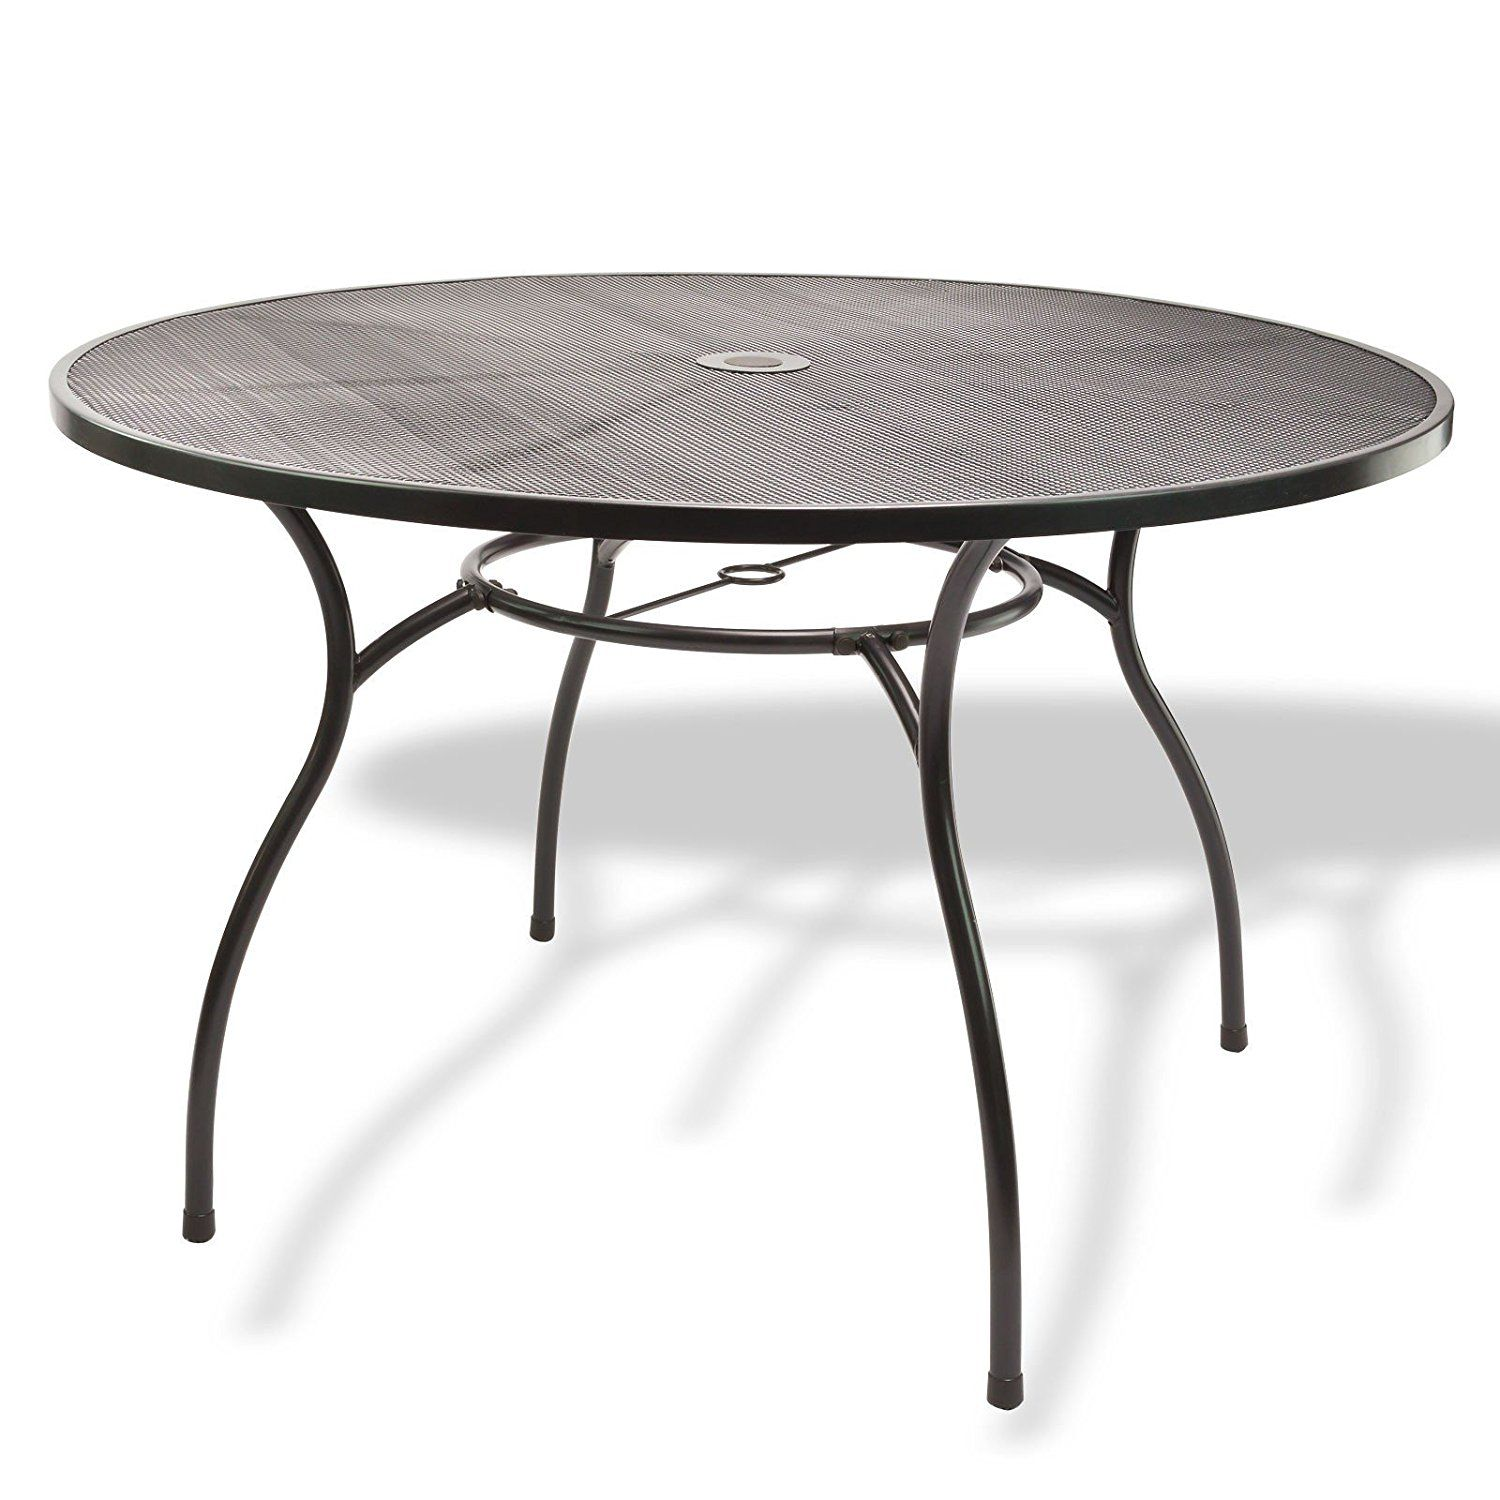 dema metal table round las vegas design 120 x 71 cm amazon